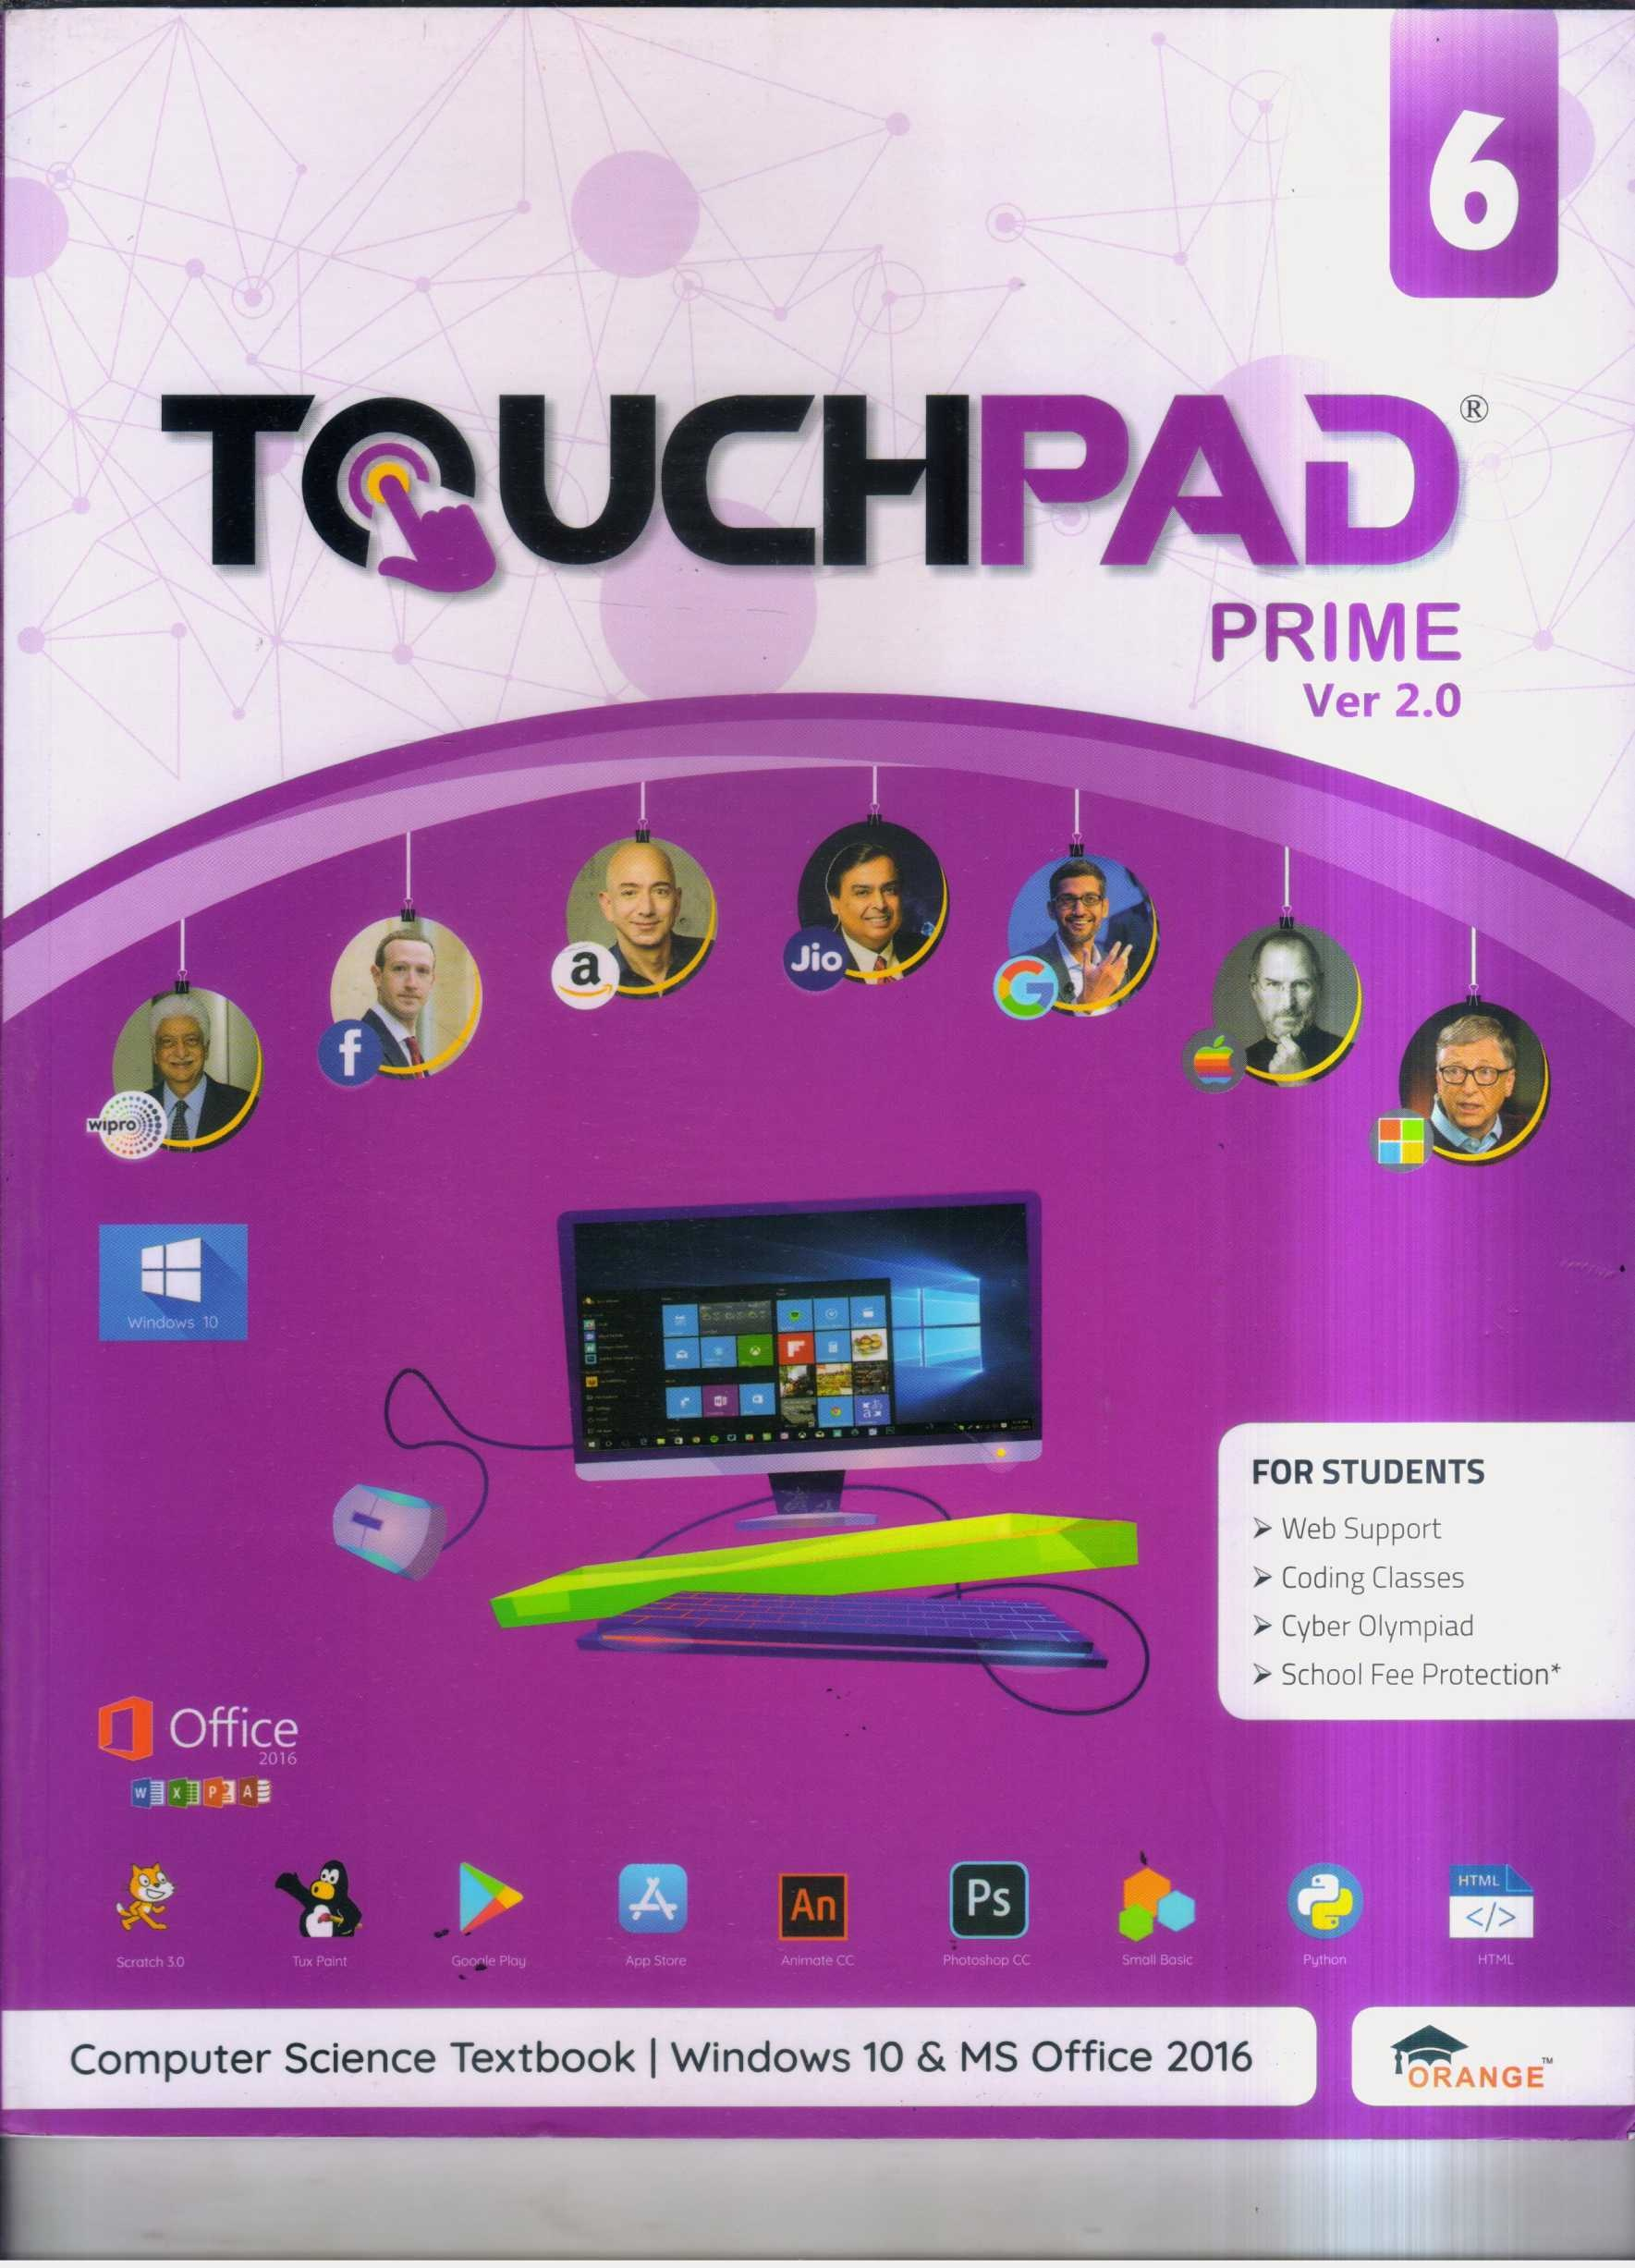 TOUCHPAD PRIME VER 2.0 CLASS 6